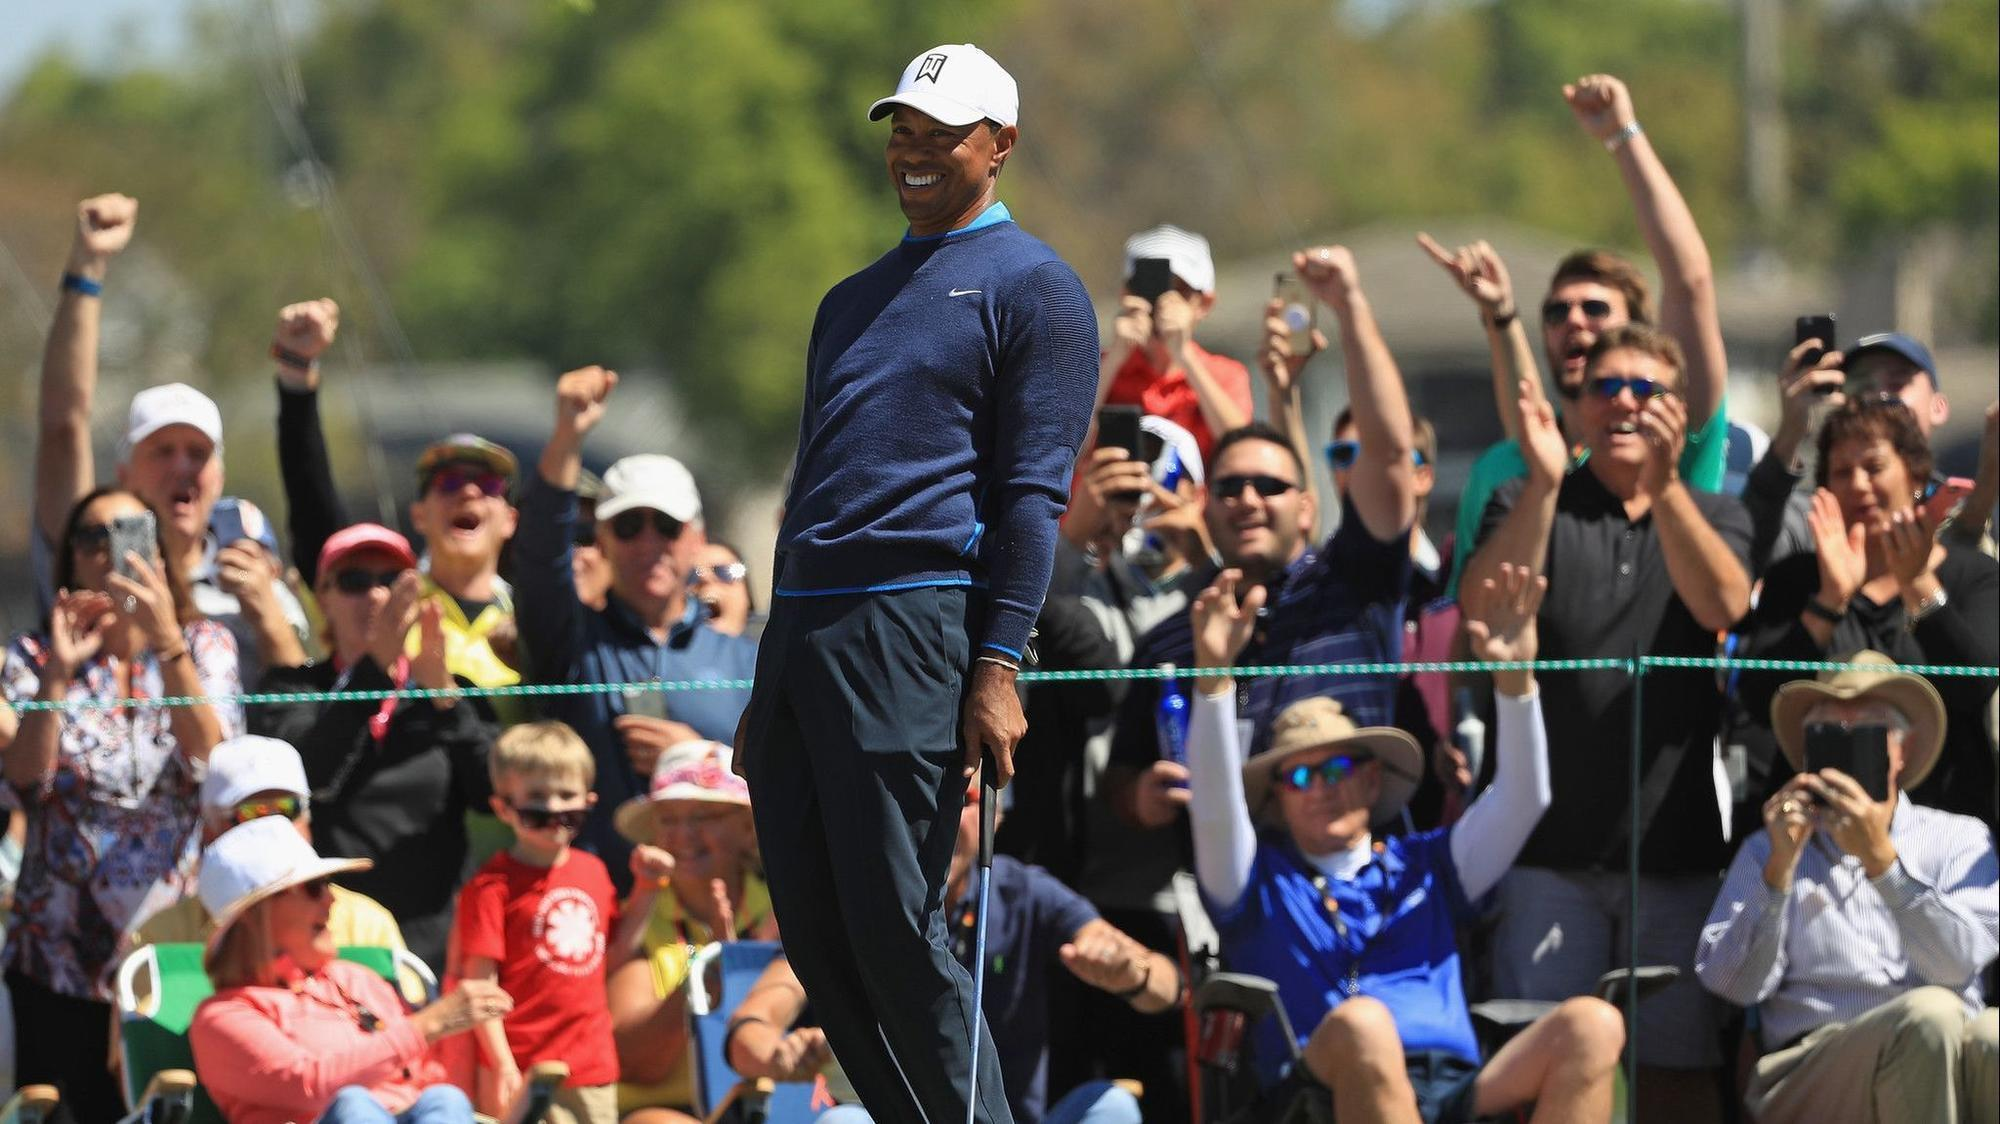 Arnold Palmer Invitational Preview: Tiger Woods, Phil Mickelson headline action at Bay Hill - Orlando Sentinel